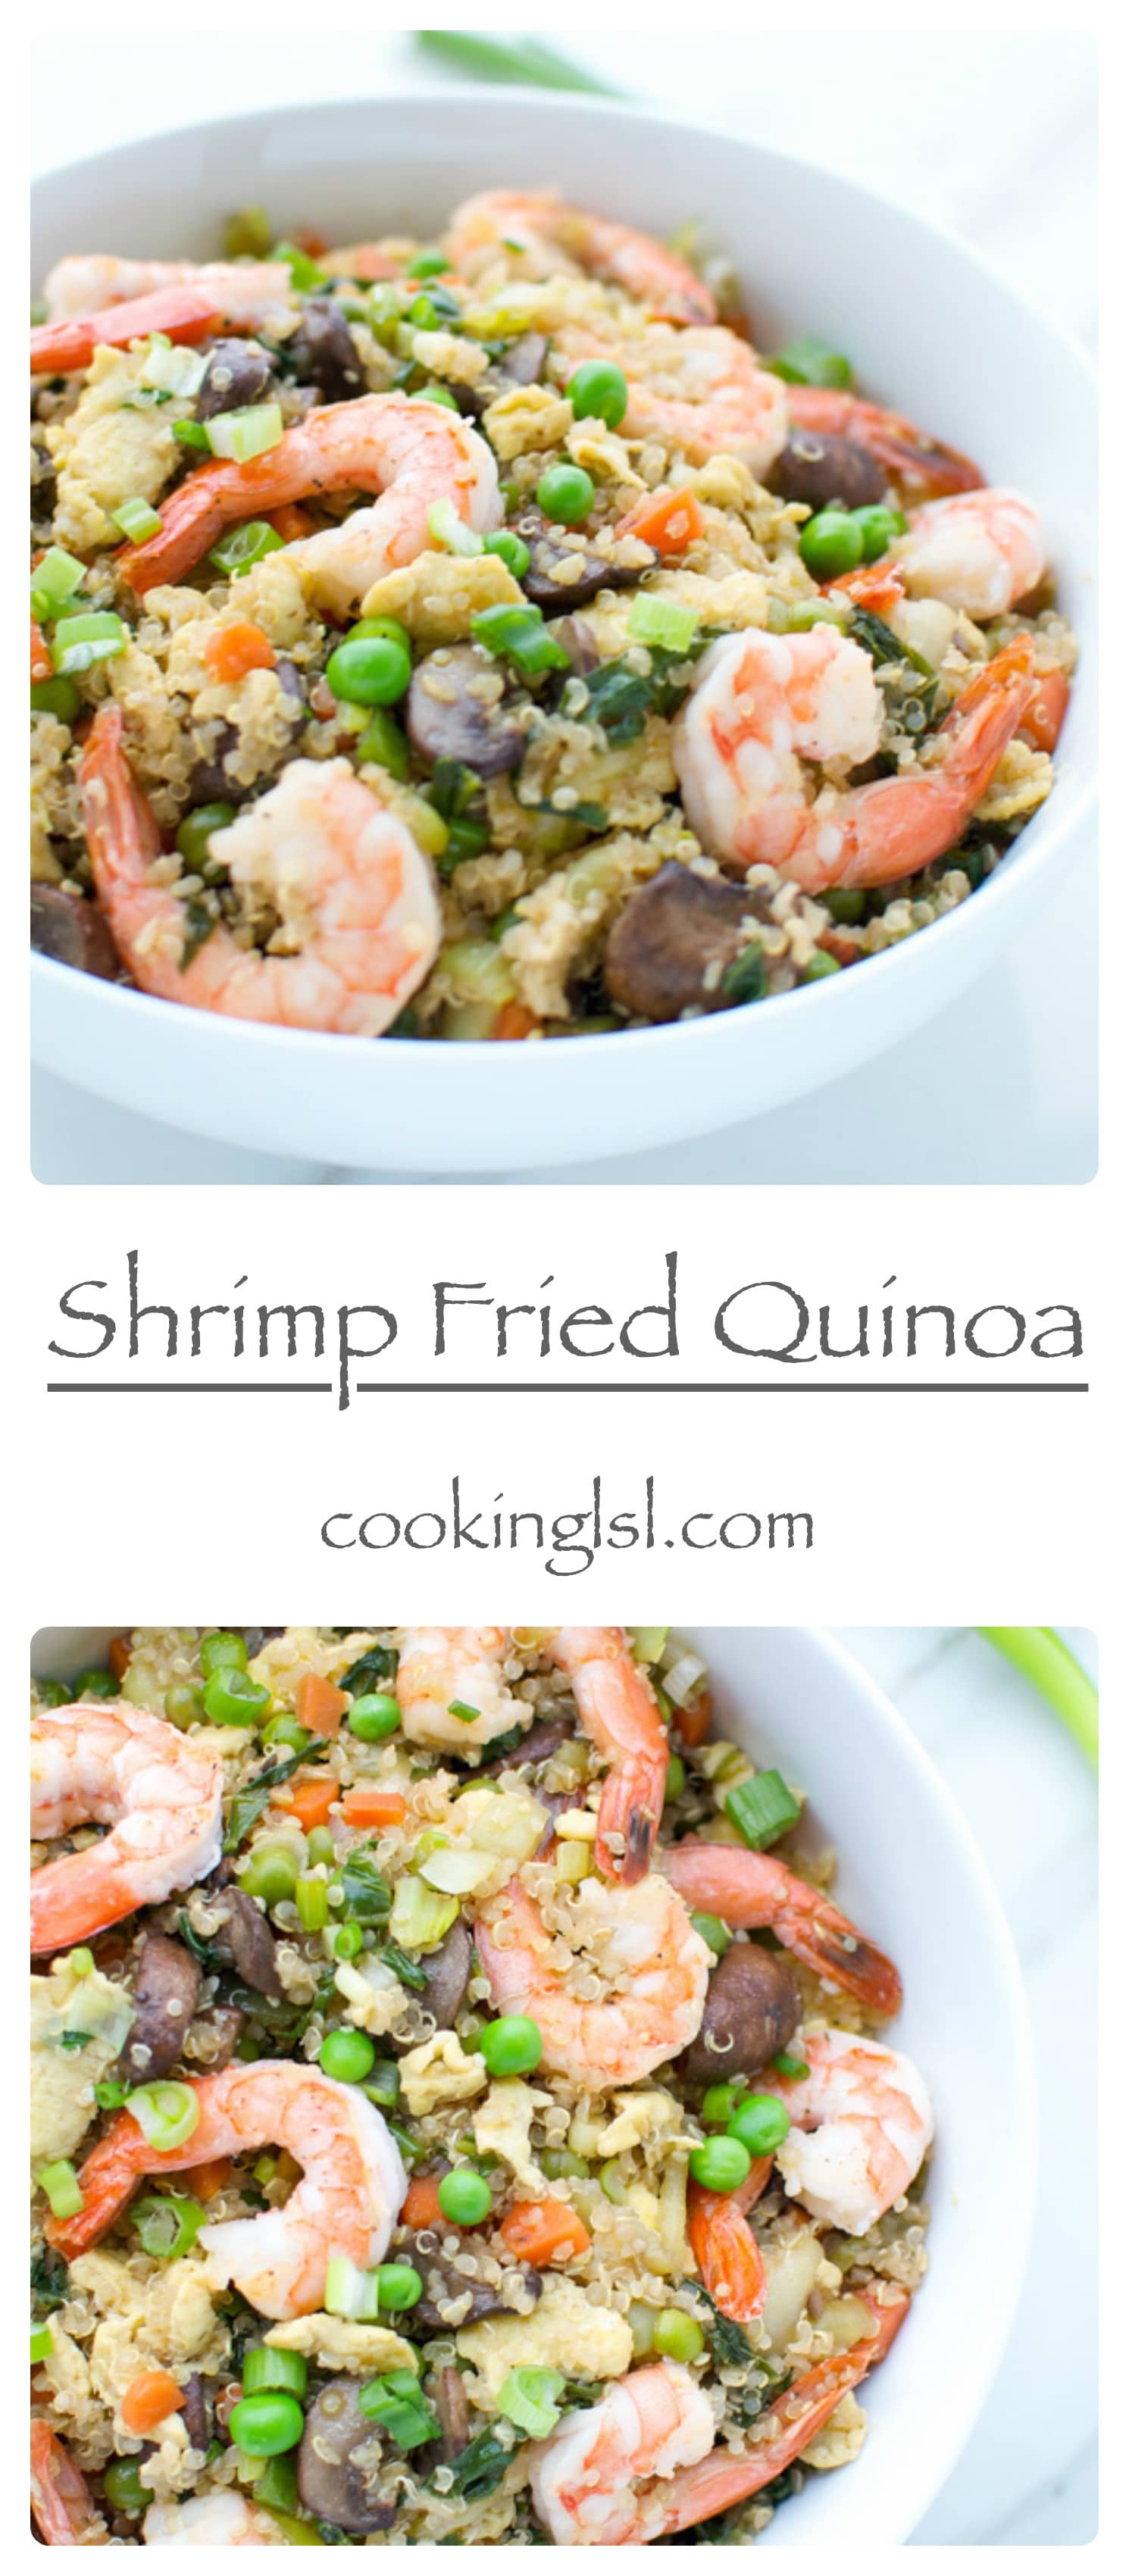 Shrimp-Fried-Quinoa-rice-asian-easy